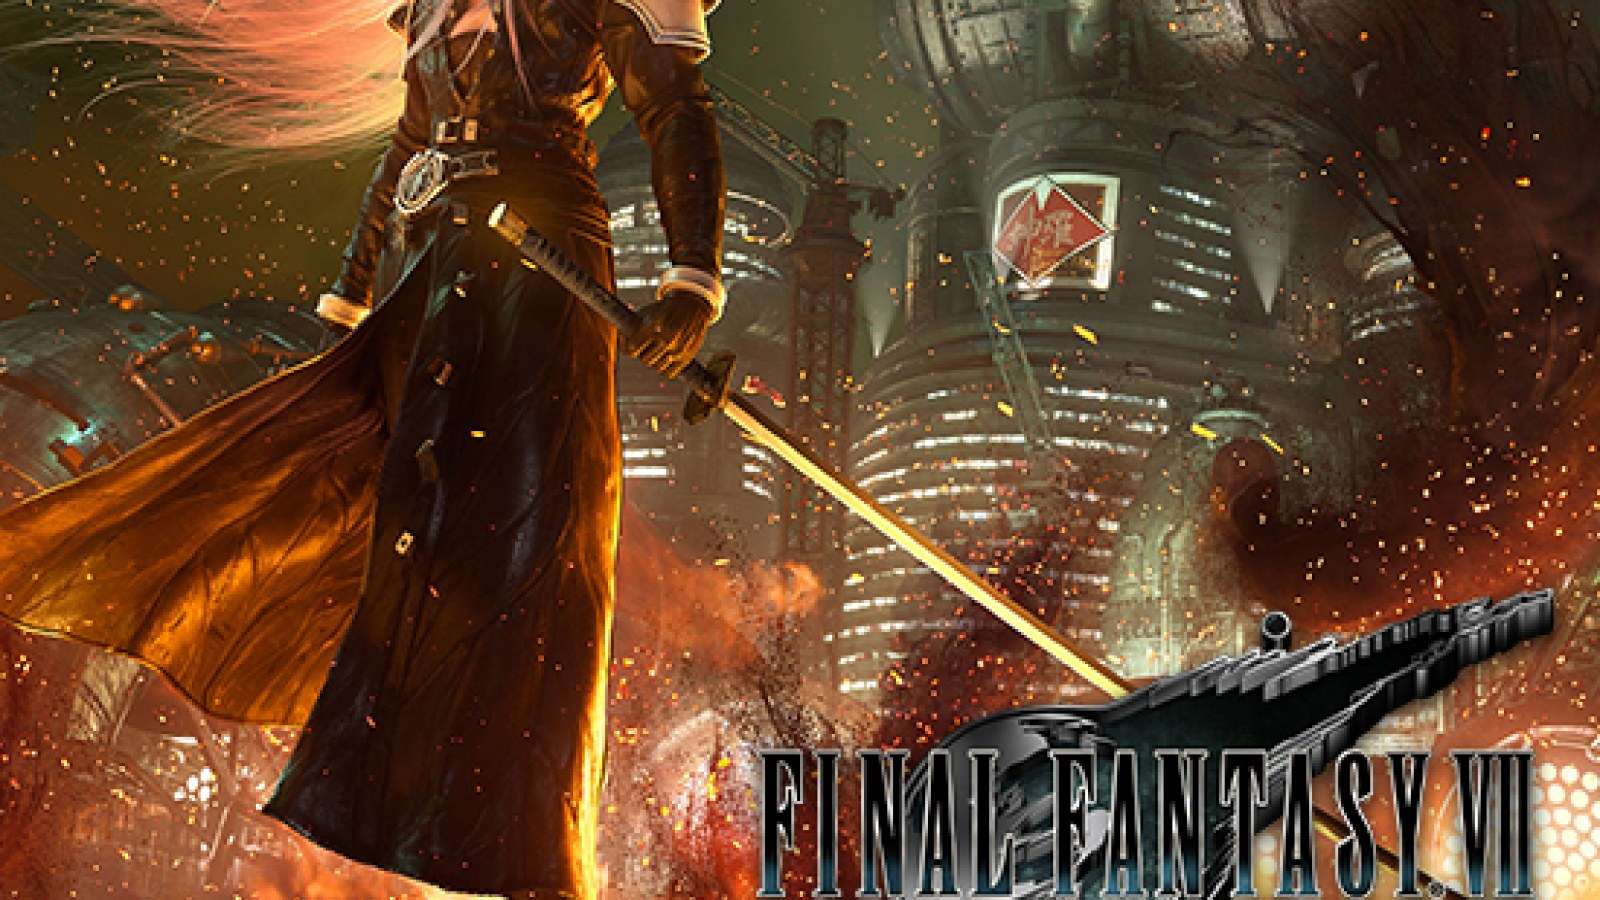 Two Key Questions About 'Final Fantasy VII Remake' Ahead of